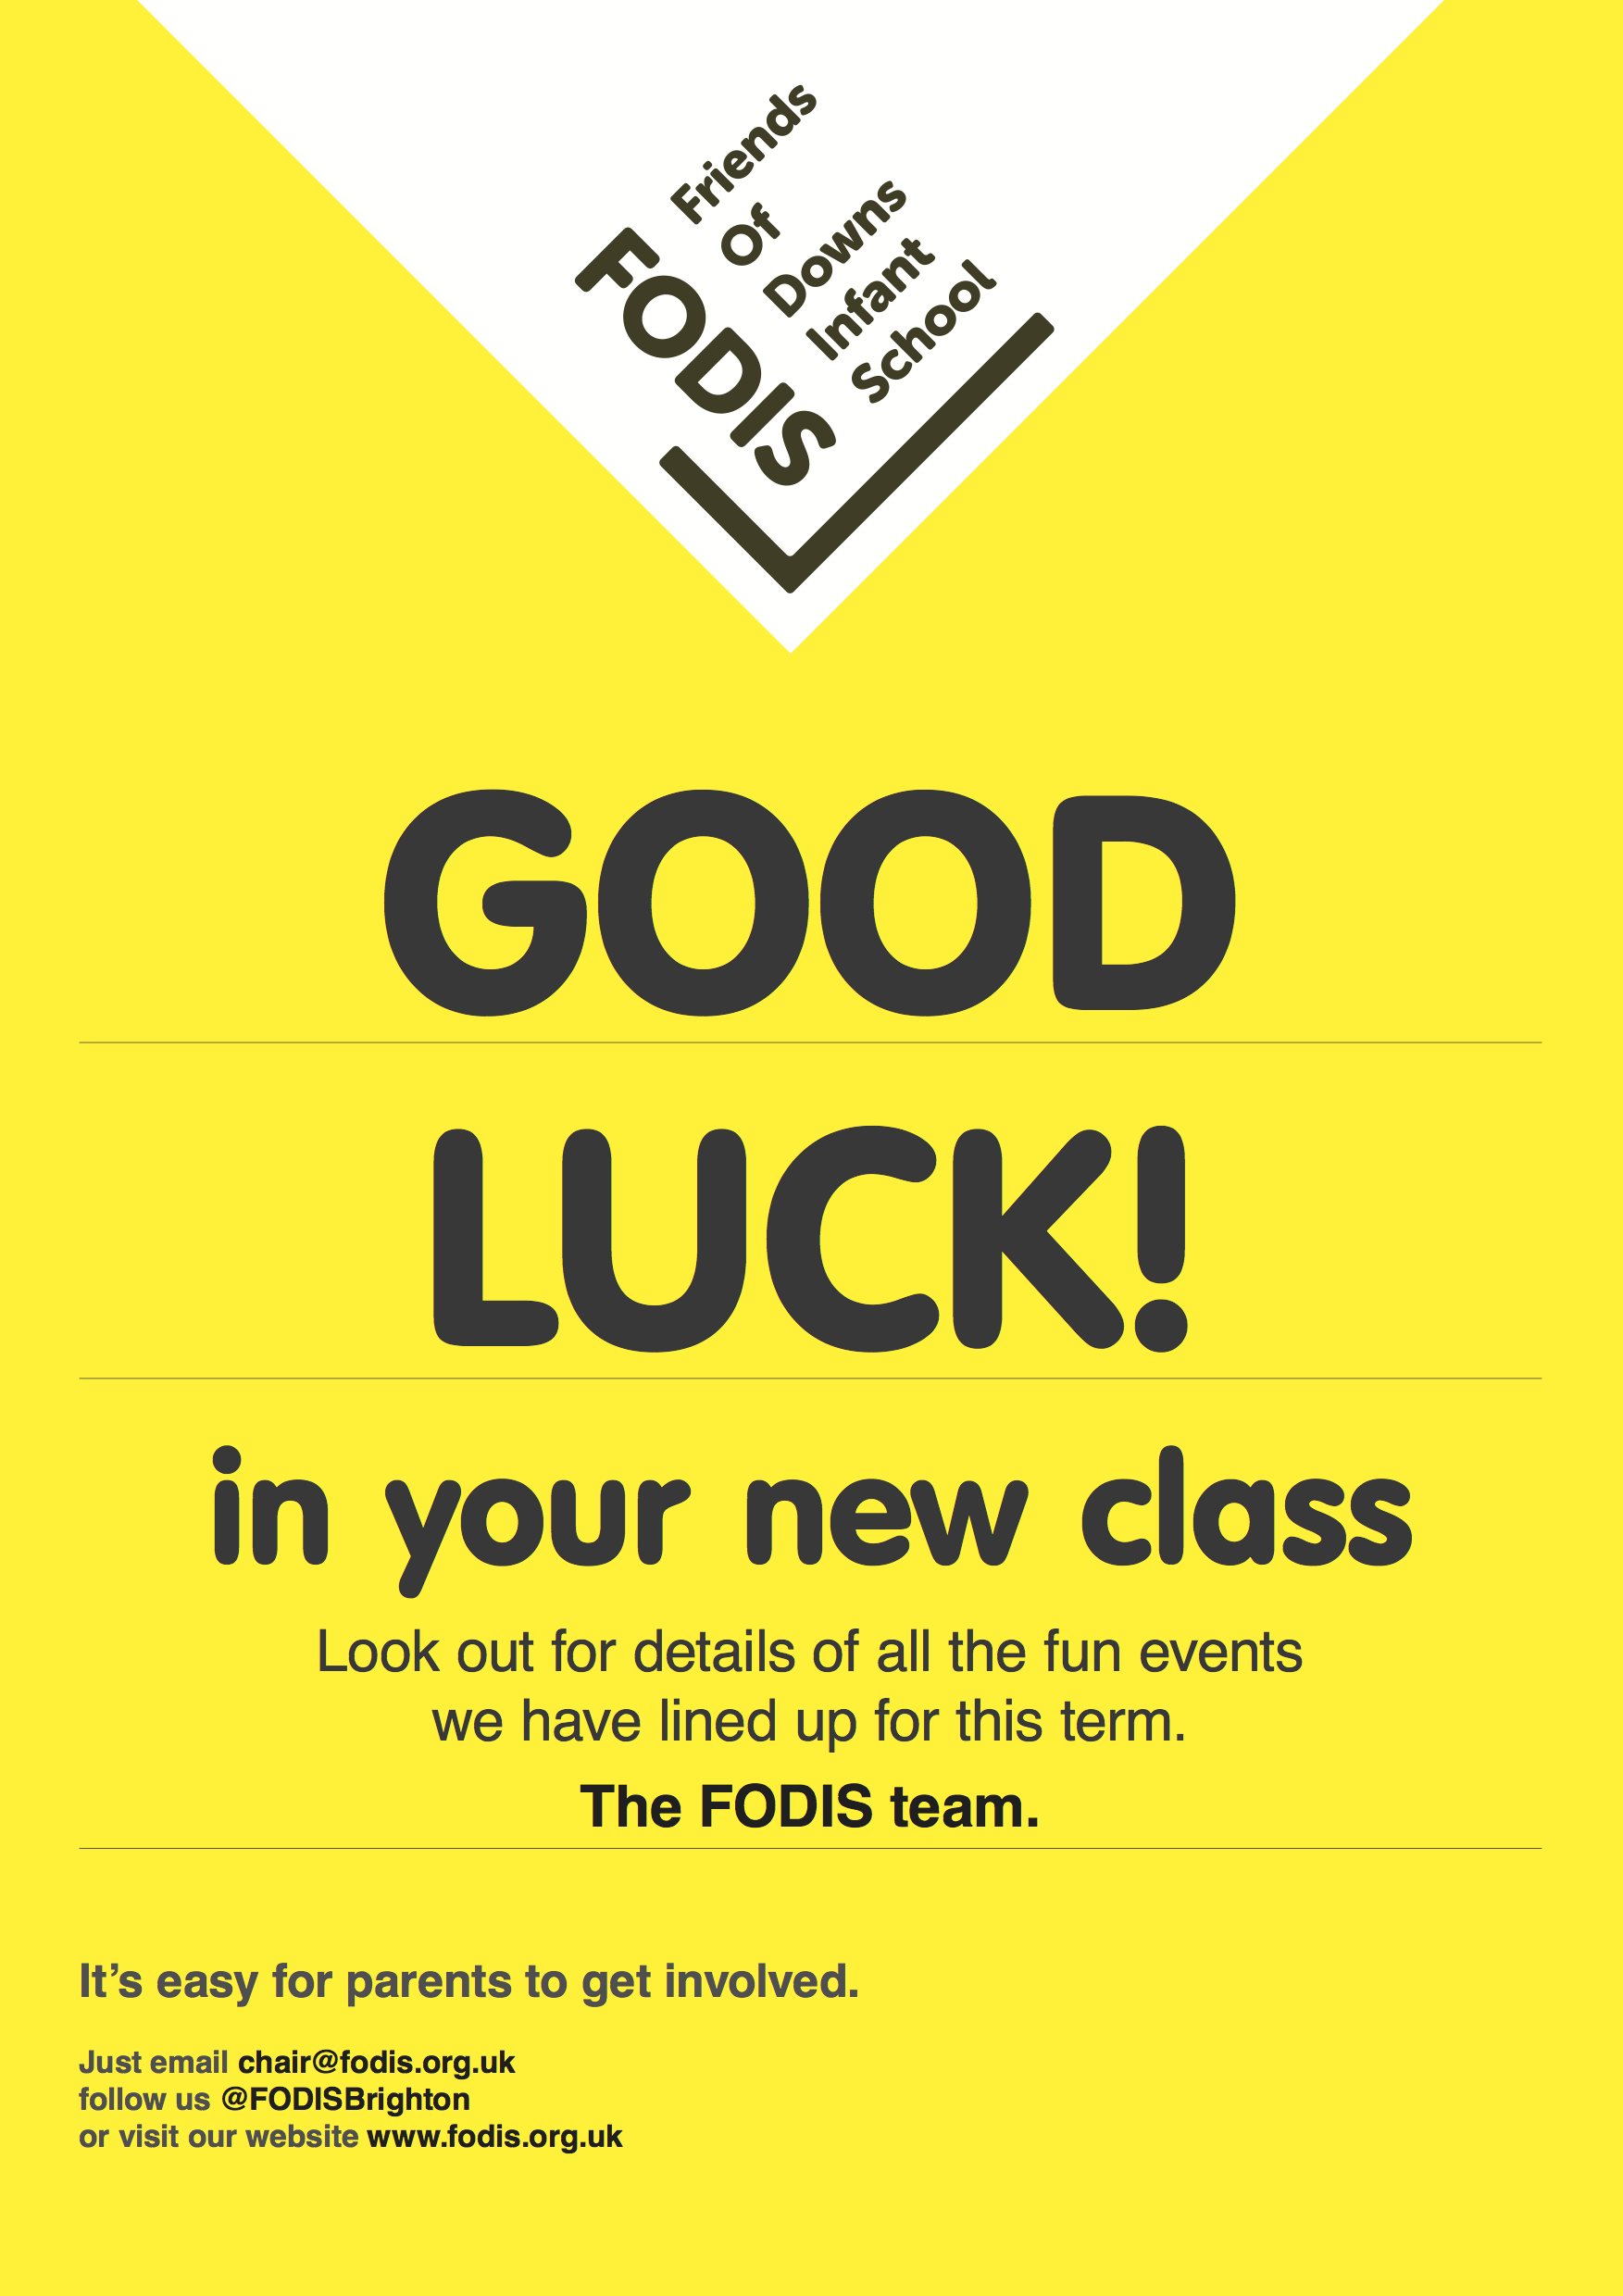 FODIS Web site 2014/15. Good luck in your new class, and welcome ...